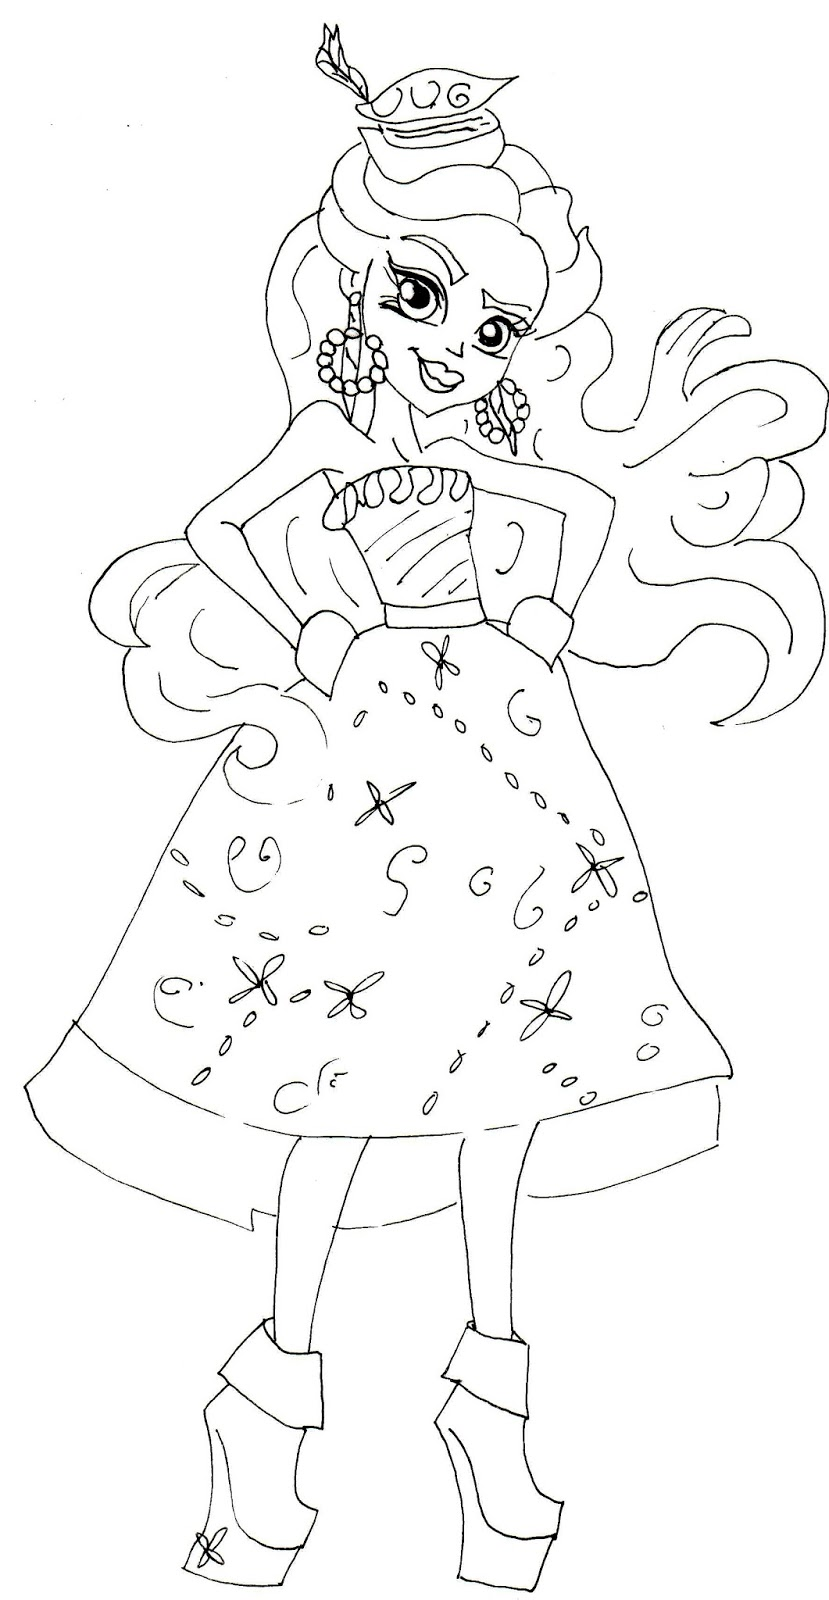 Free Printable Monster High Coloring Pages: Dayna Treasura